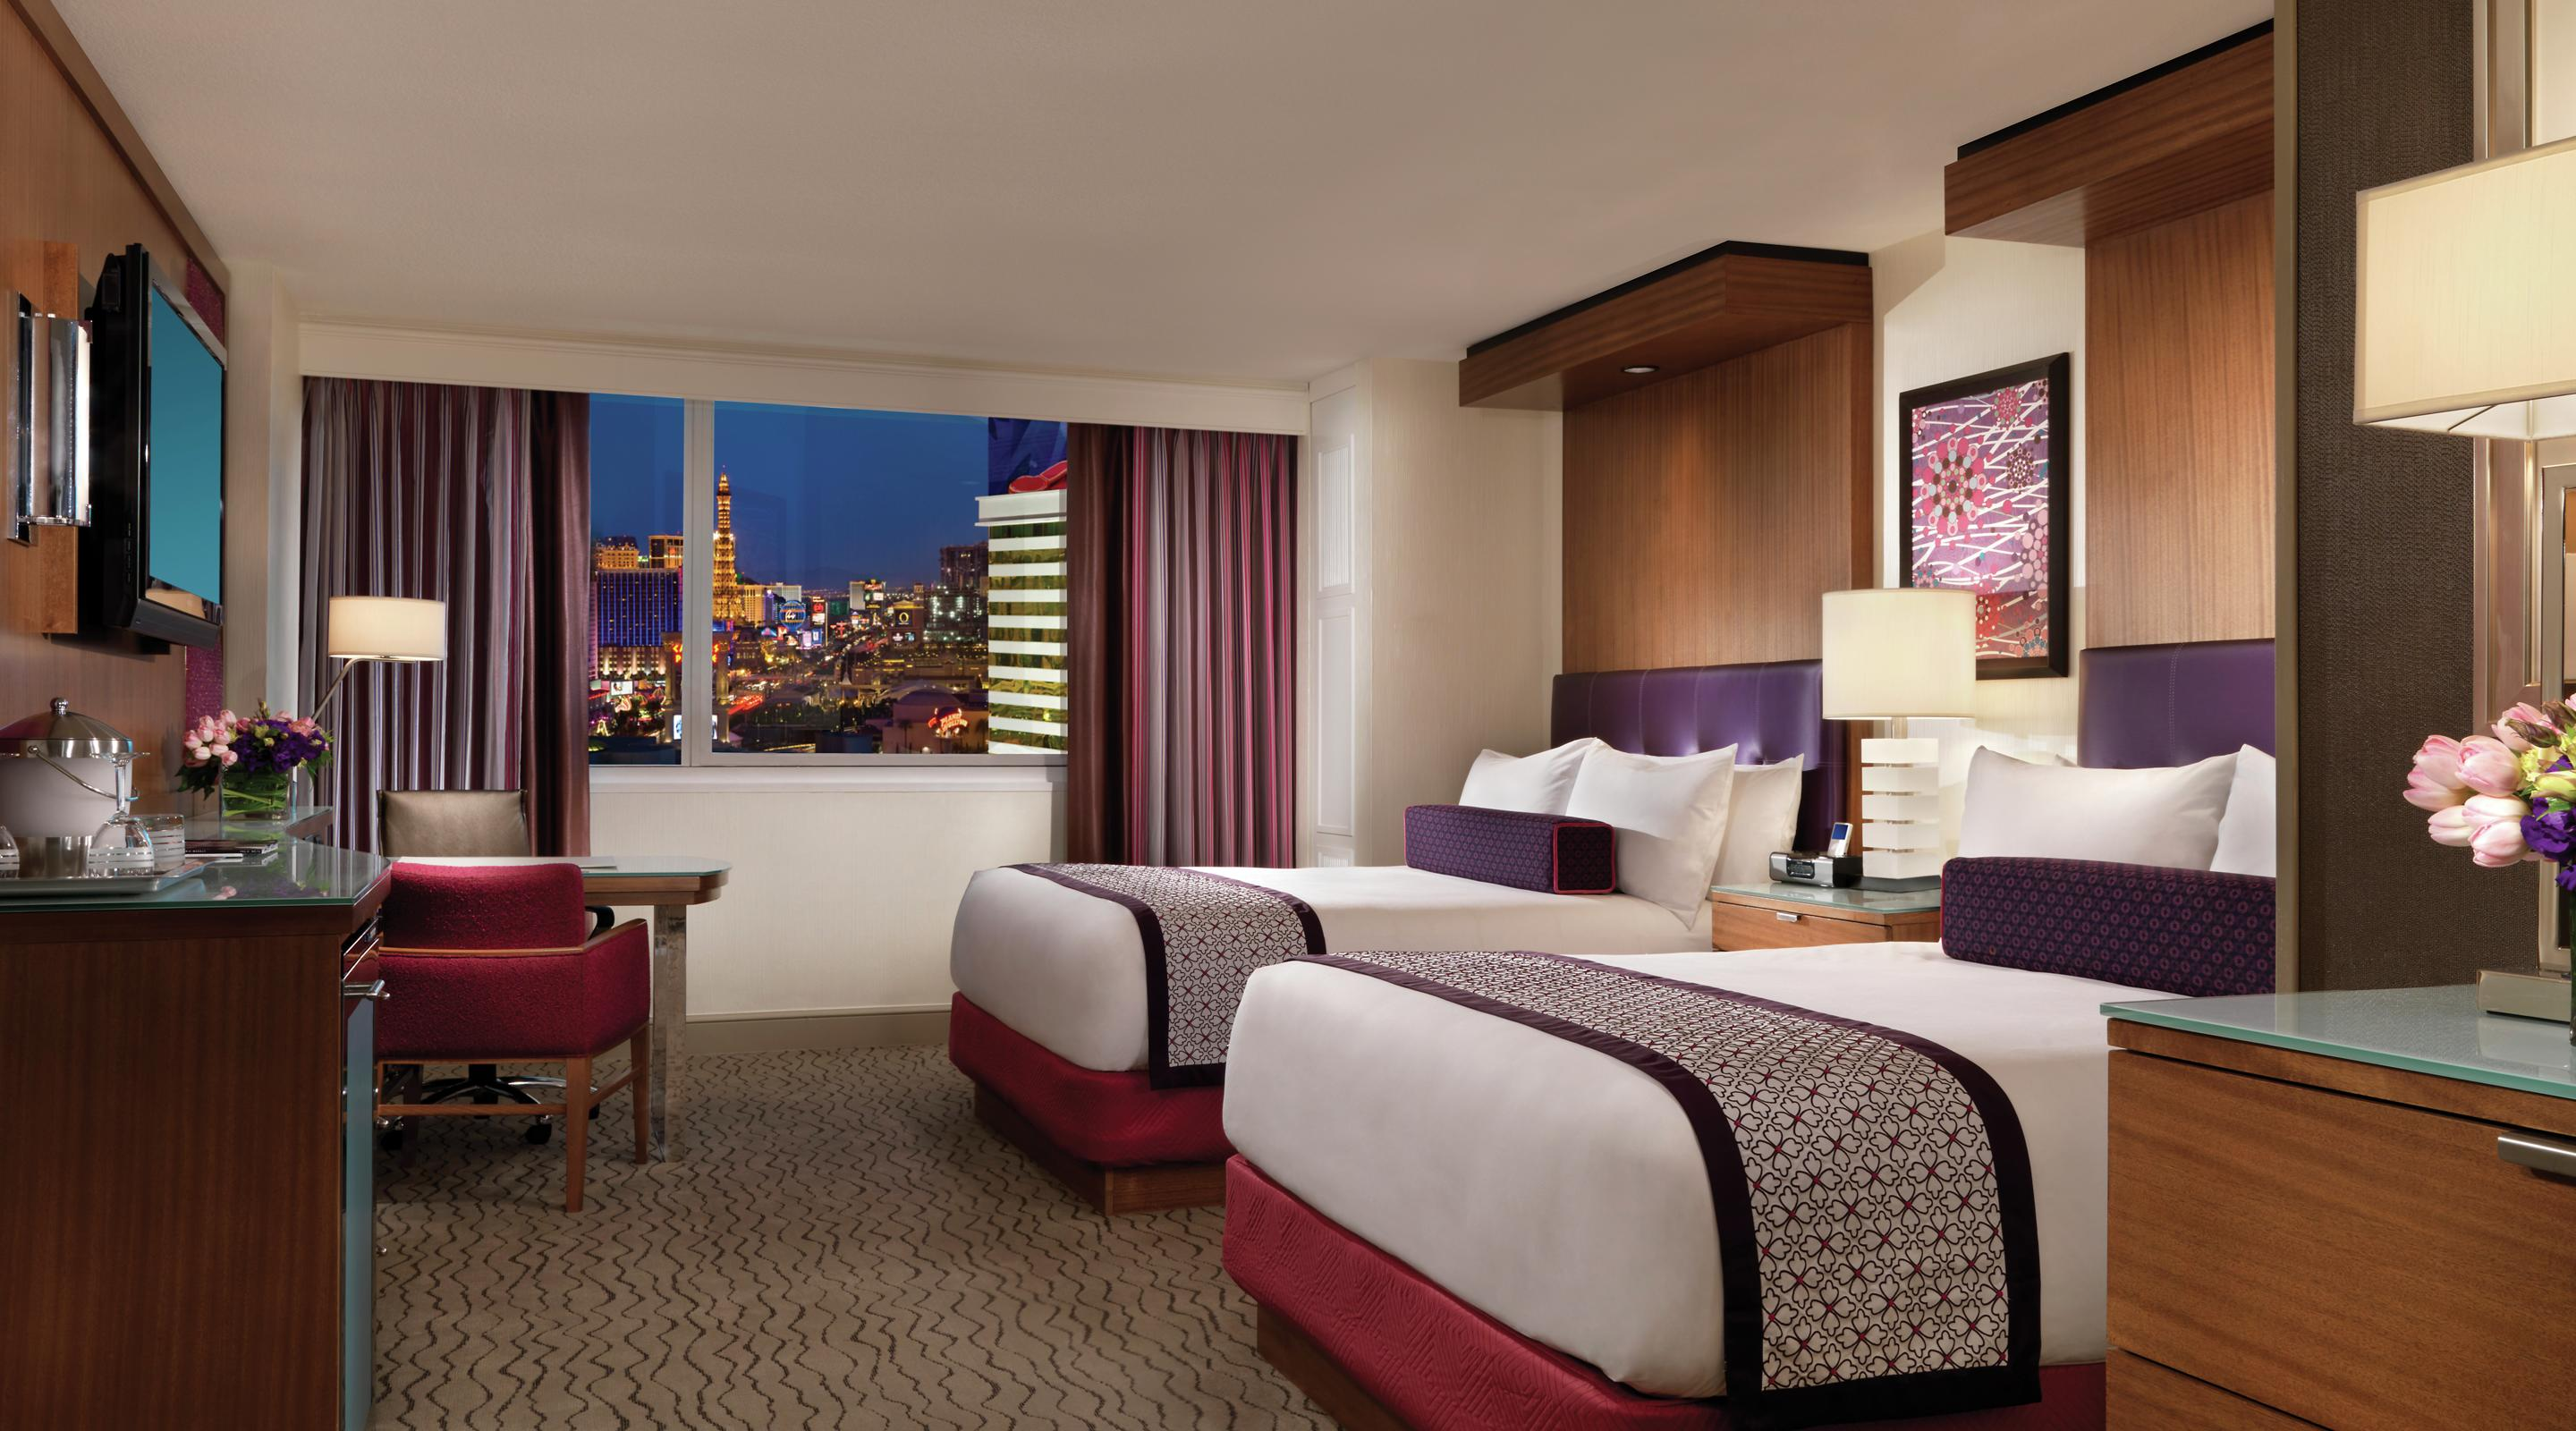 The Mirage Resort or Tower Queen Strip View room.